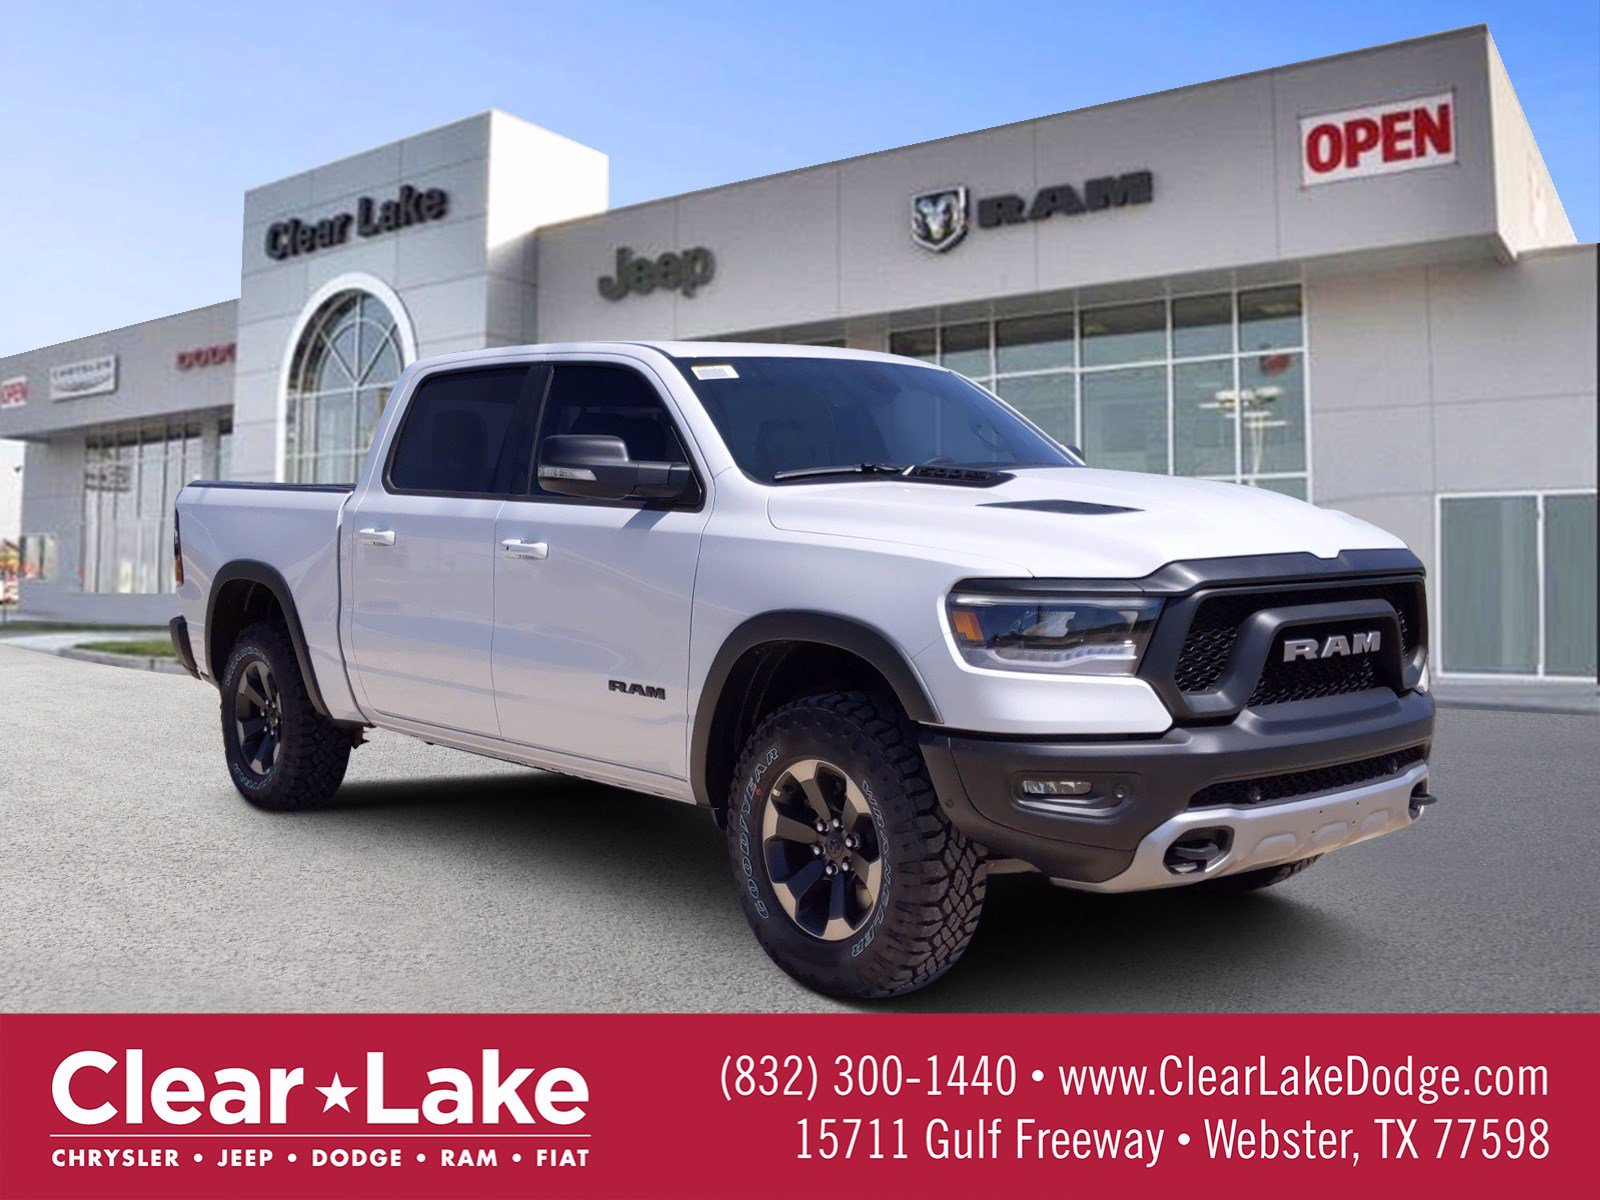 New 2020 Ram 1500 Rebel Crew Cab In Webster Ln314164 Clear Lake Chrysler Dodge Jeep Ram Fiat